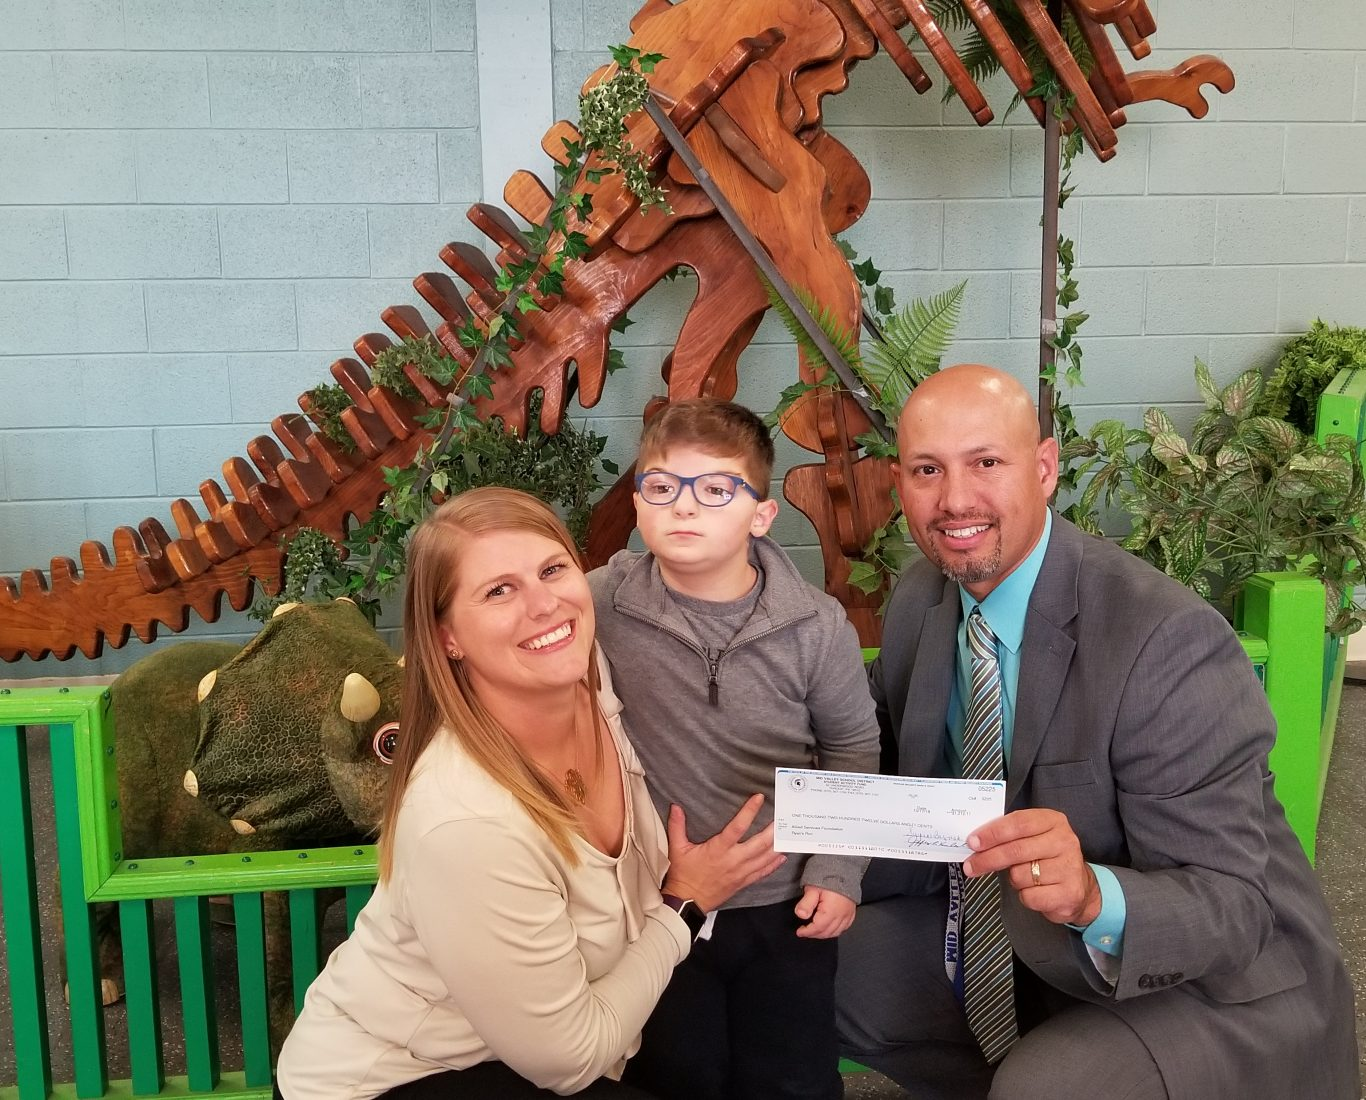 Child and adults pose with check in front of dinosaur display